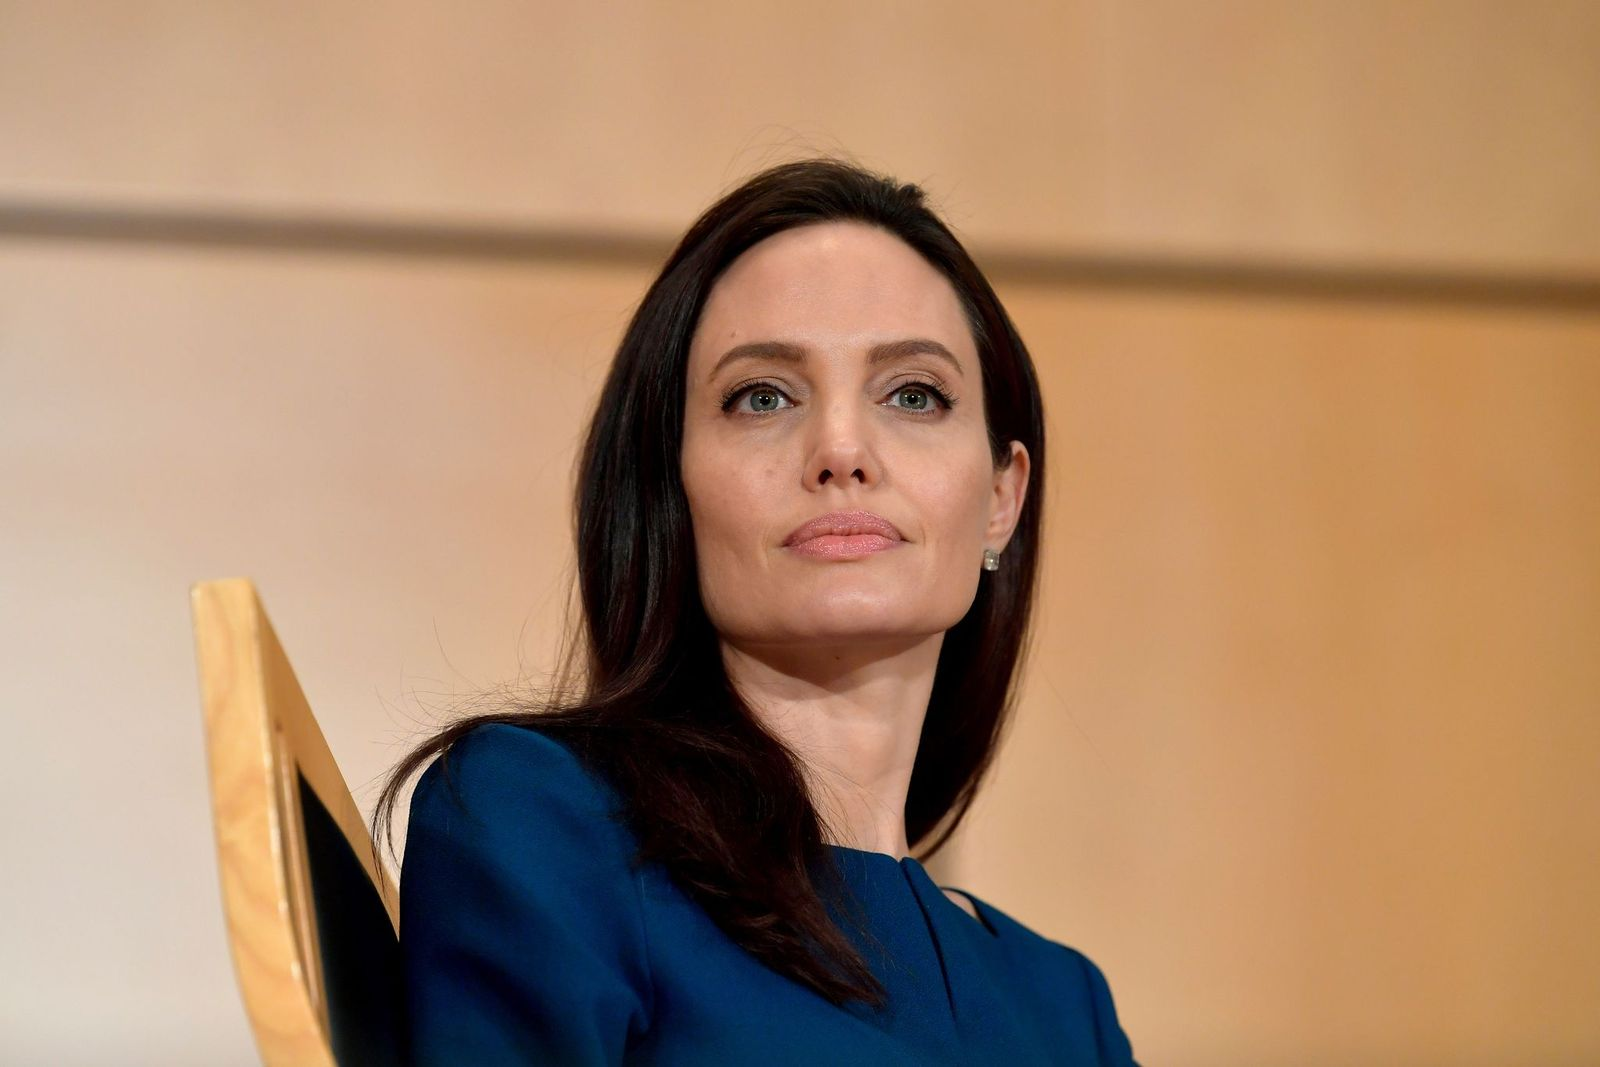 Angelina Jolie at the annual lecture of the Sergio Vieira De Mello Foundation on March 15, 2017. | Photo: Getty Images